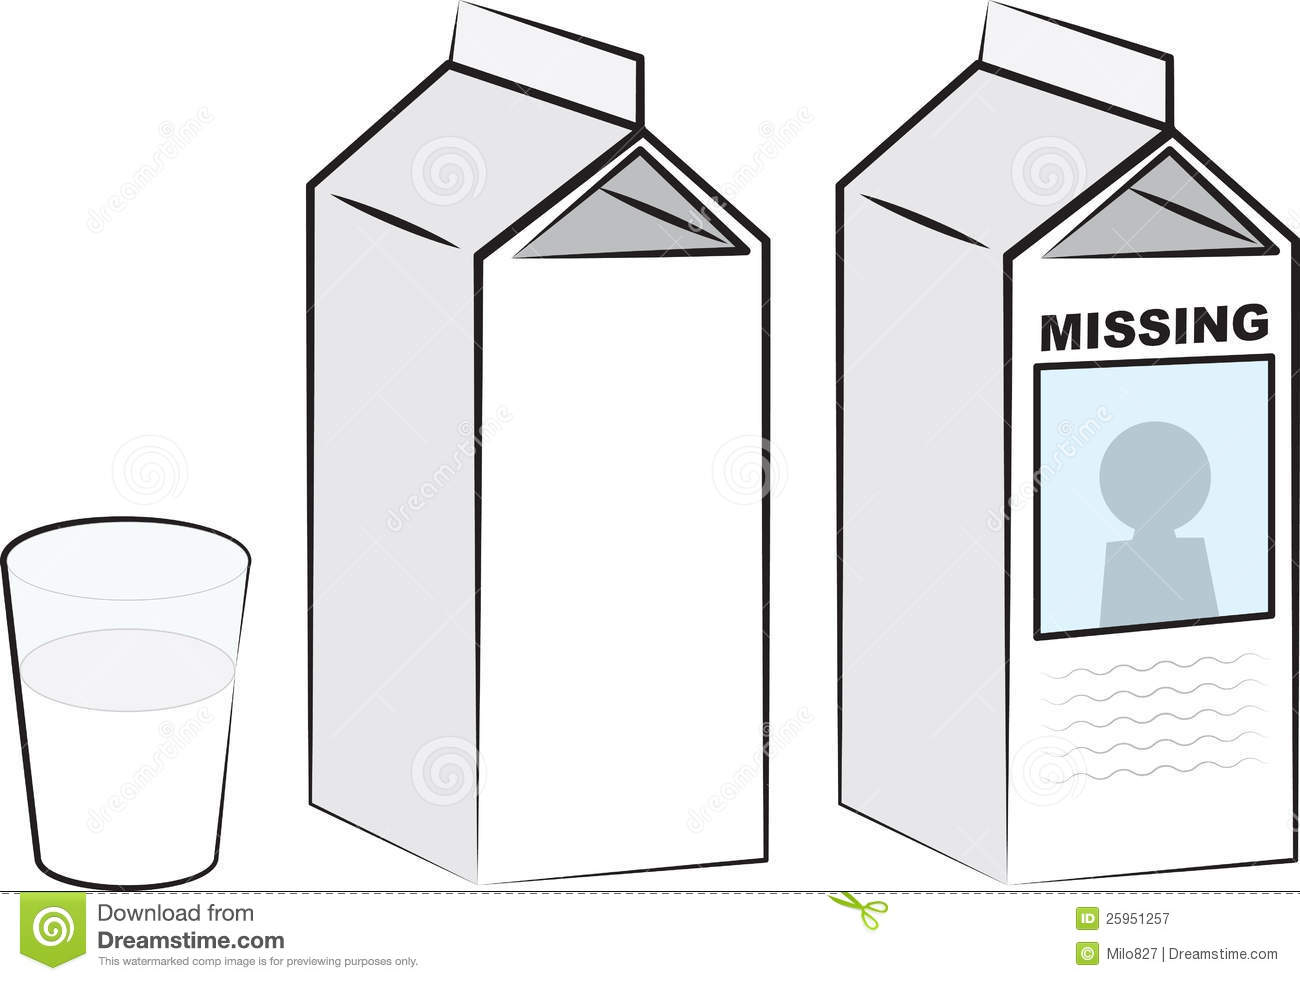 Viewing Gallery For - Milk Carton Missing